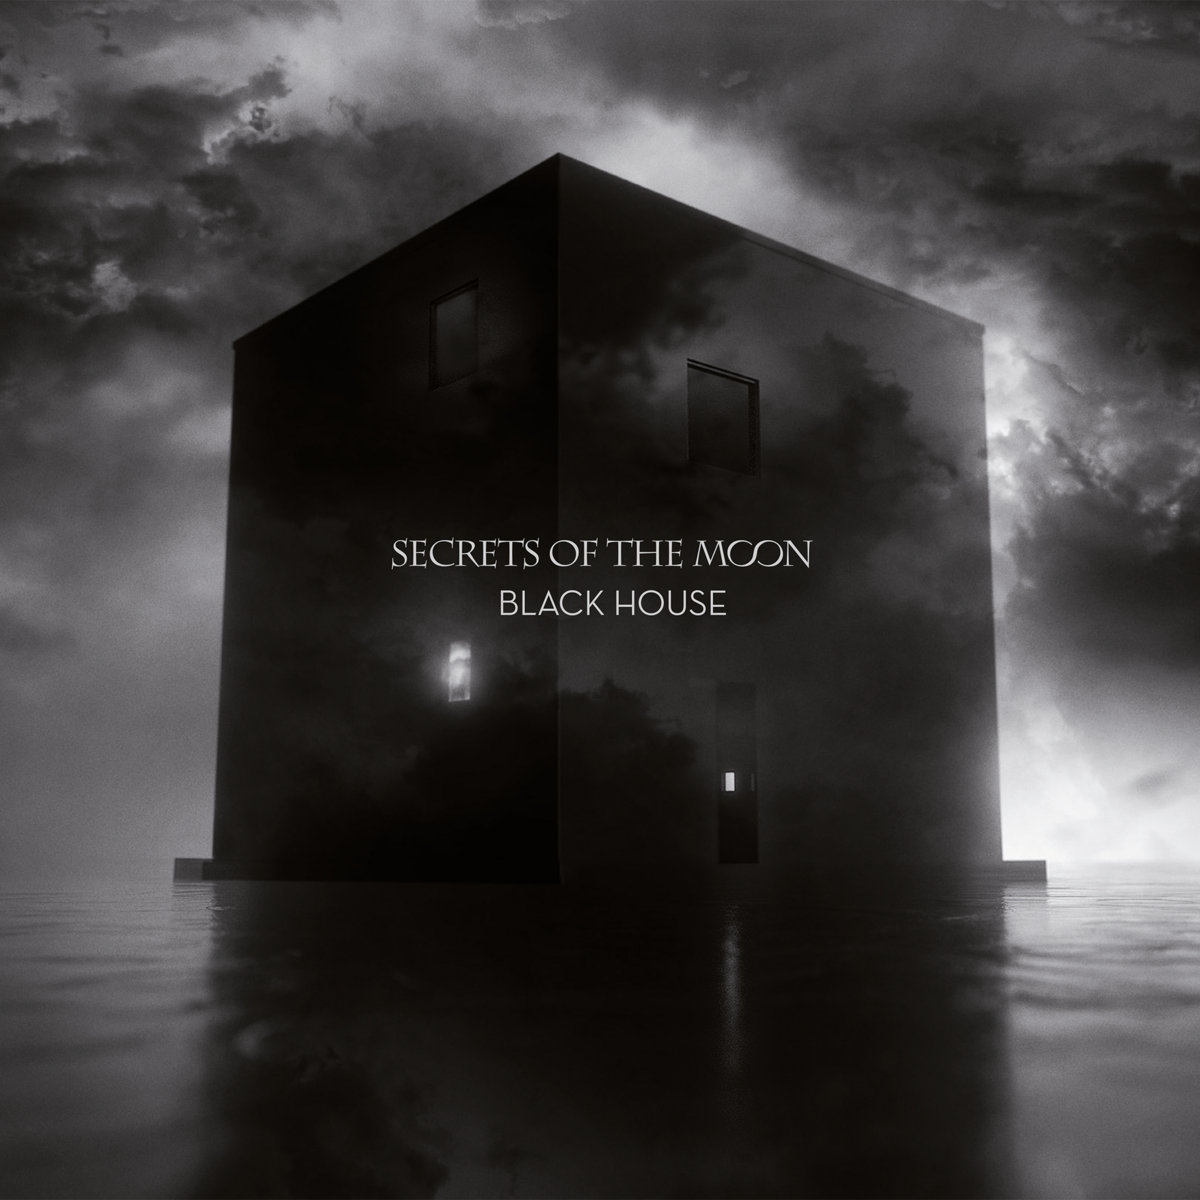 Secrets of the Moon: Black House